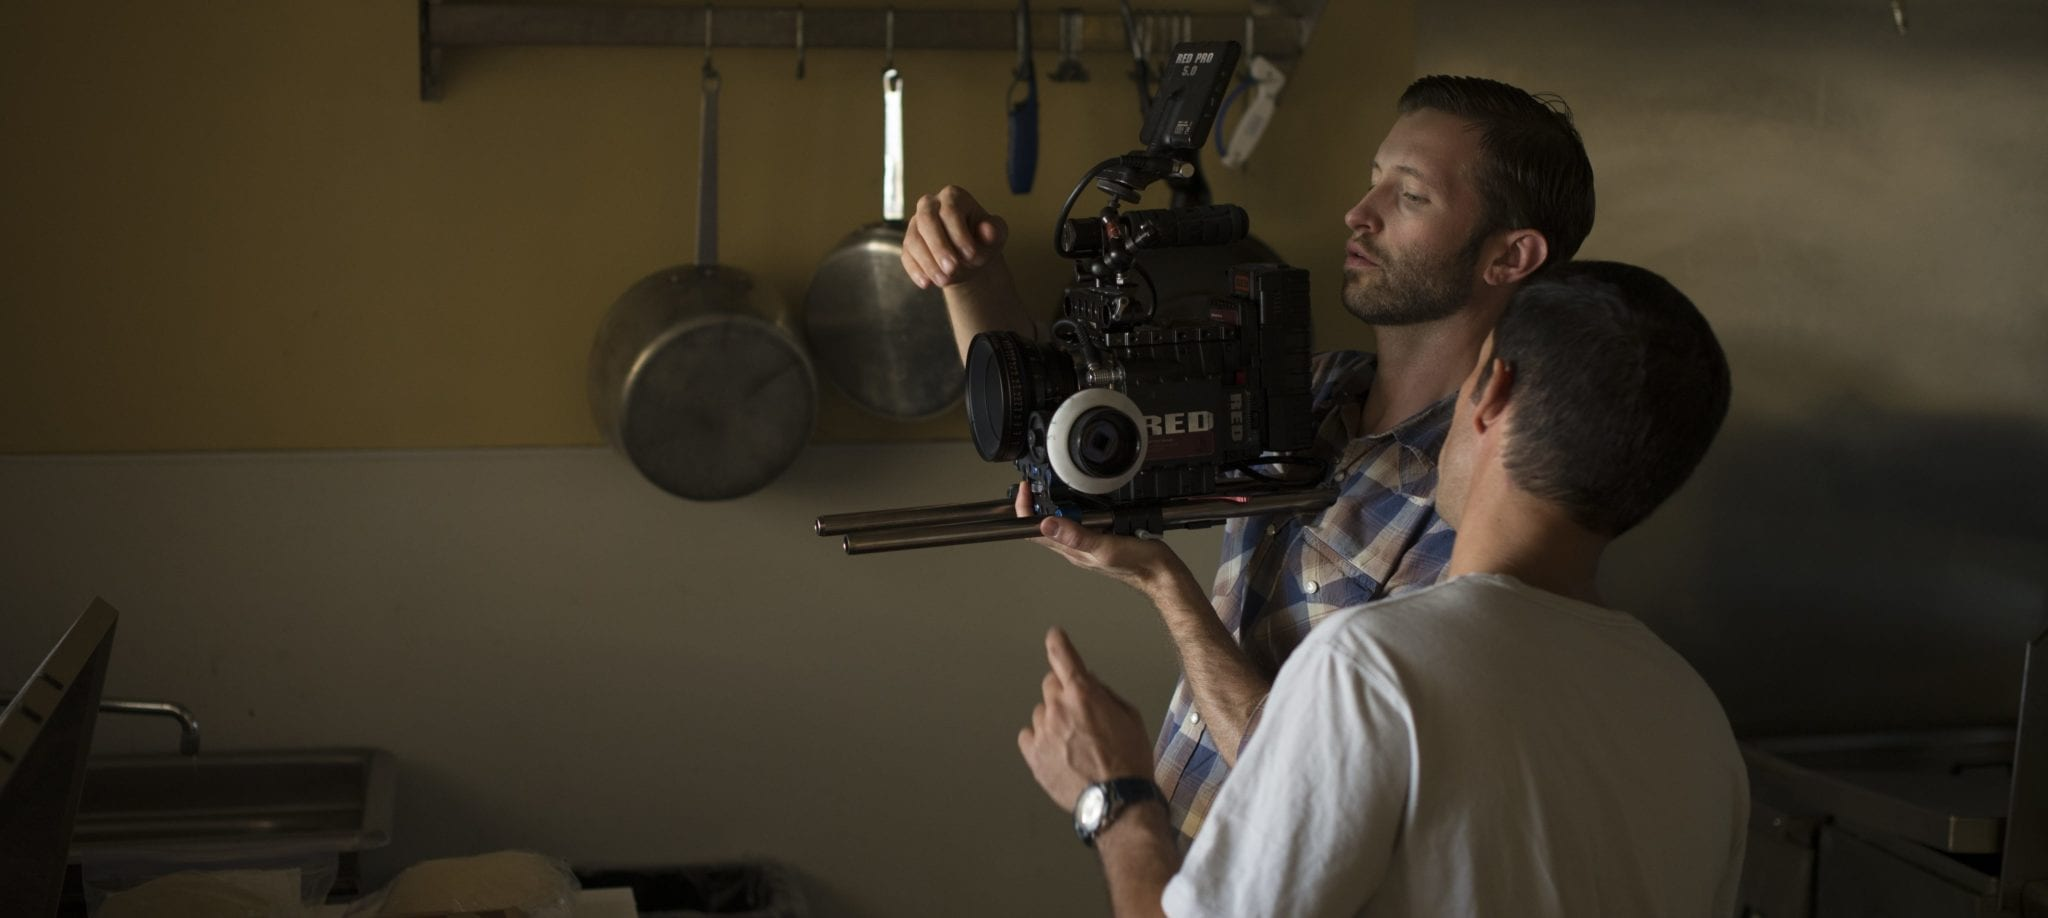 A two man crew shooting on a Red Epic for one of their film jobs.